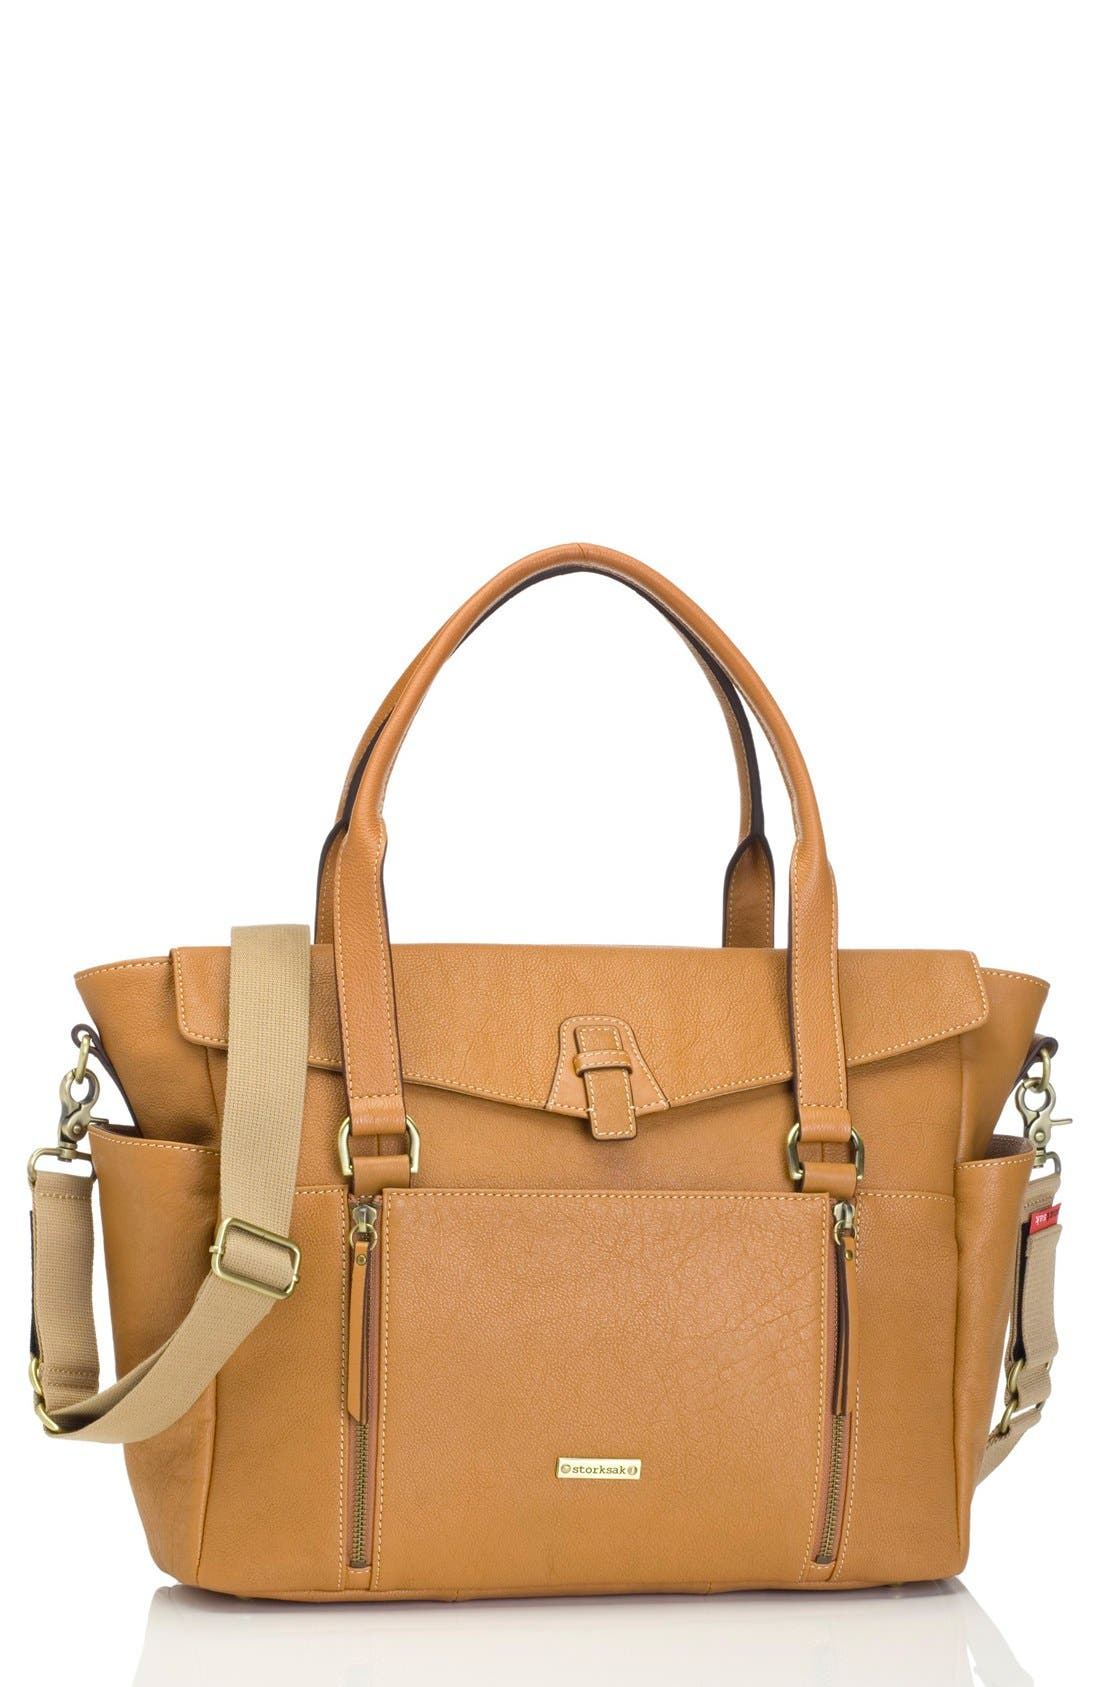 STORKSAK 'Emma' Leather Diaper Bag, Main, color, TAN